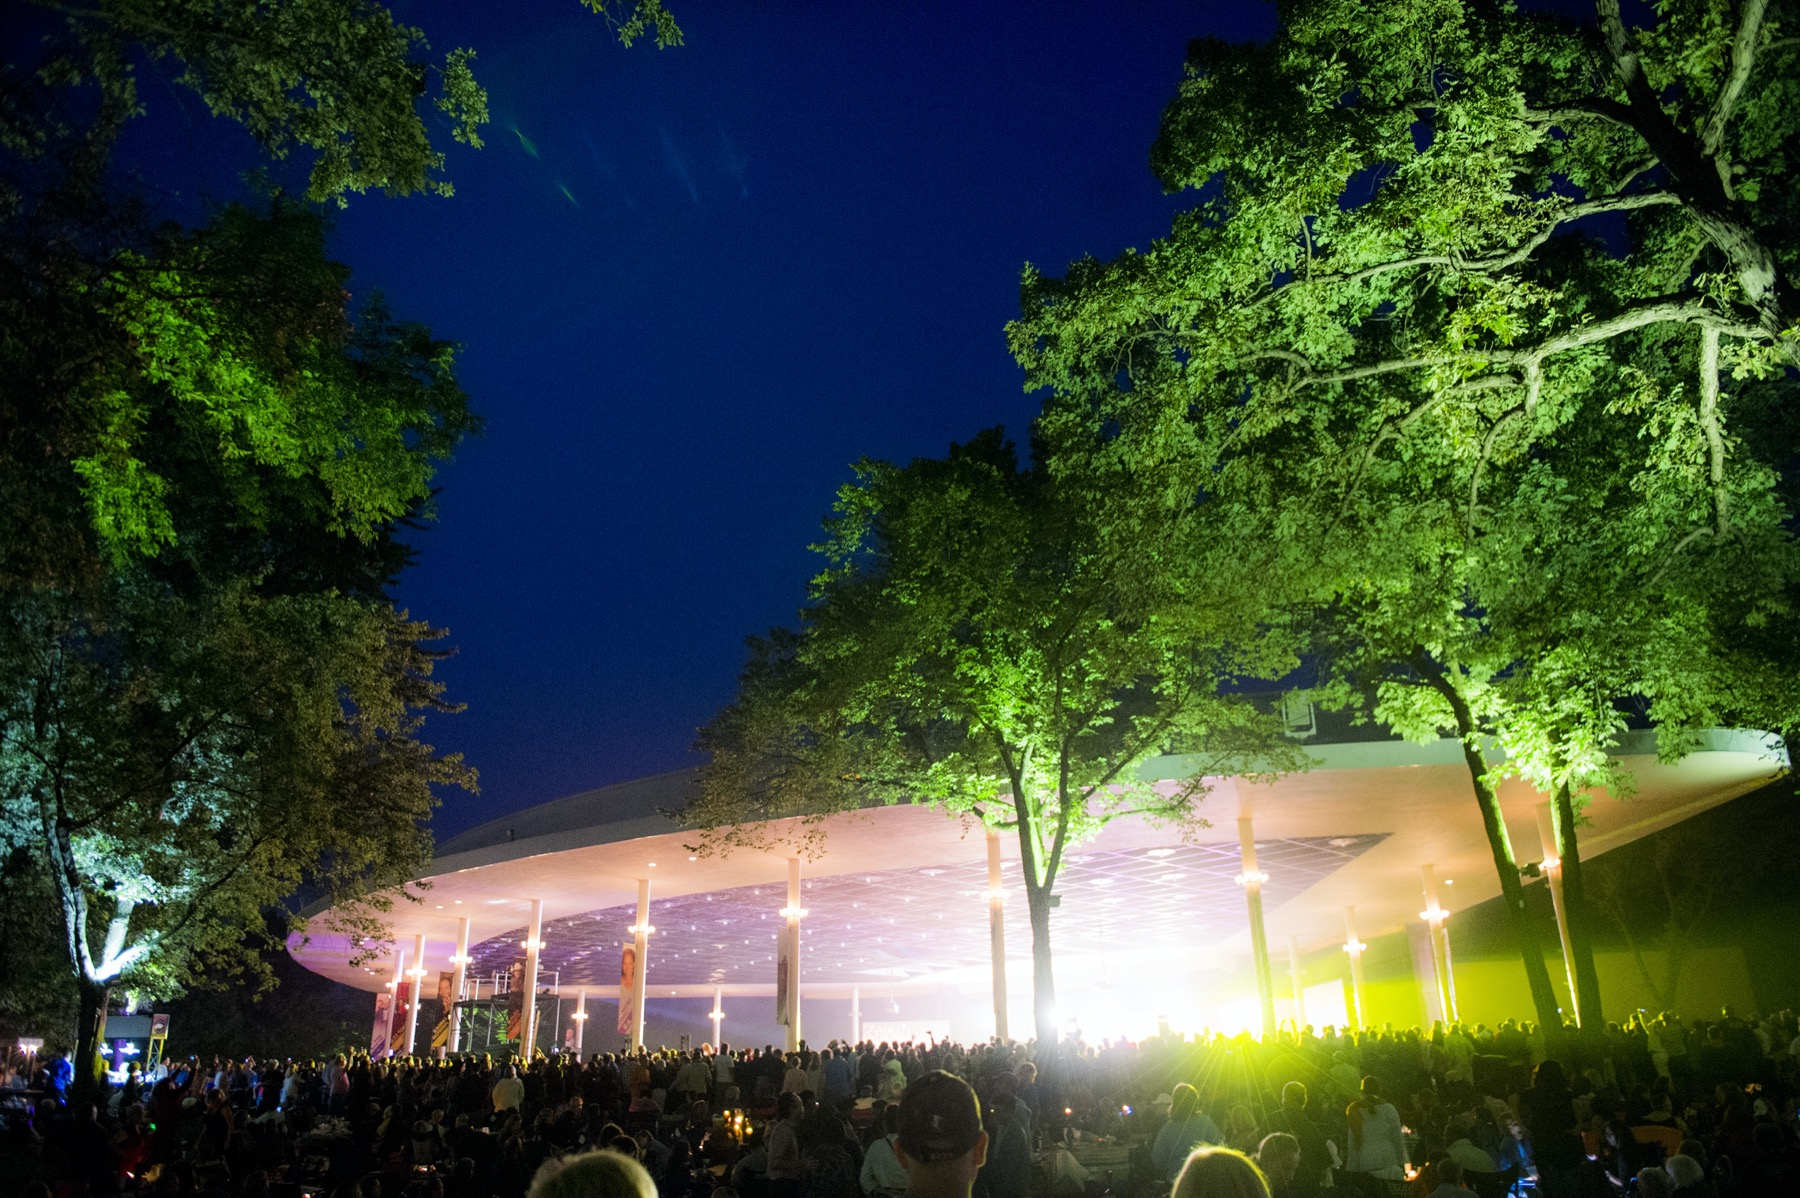 Chicago Symphony Orchestra performs On the Waterfront at Ravinia Festival